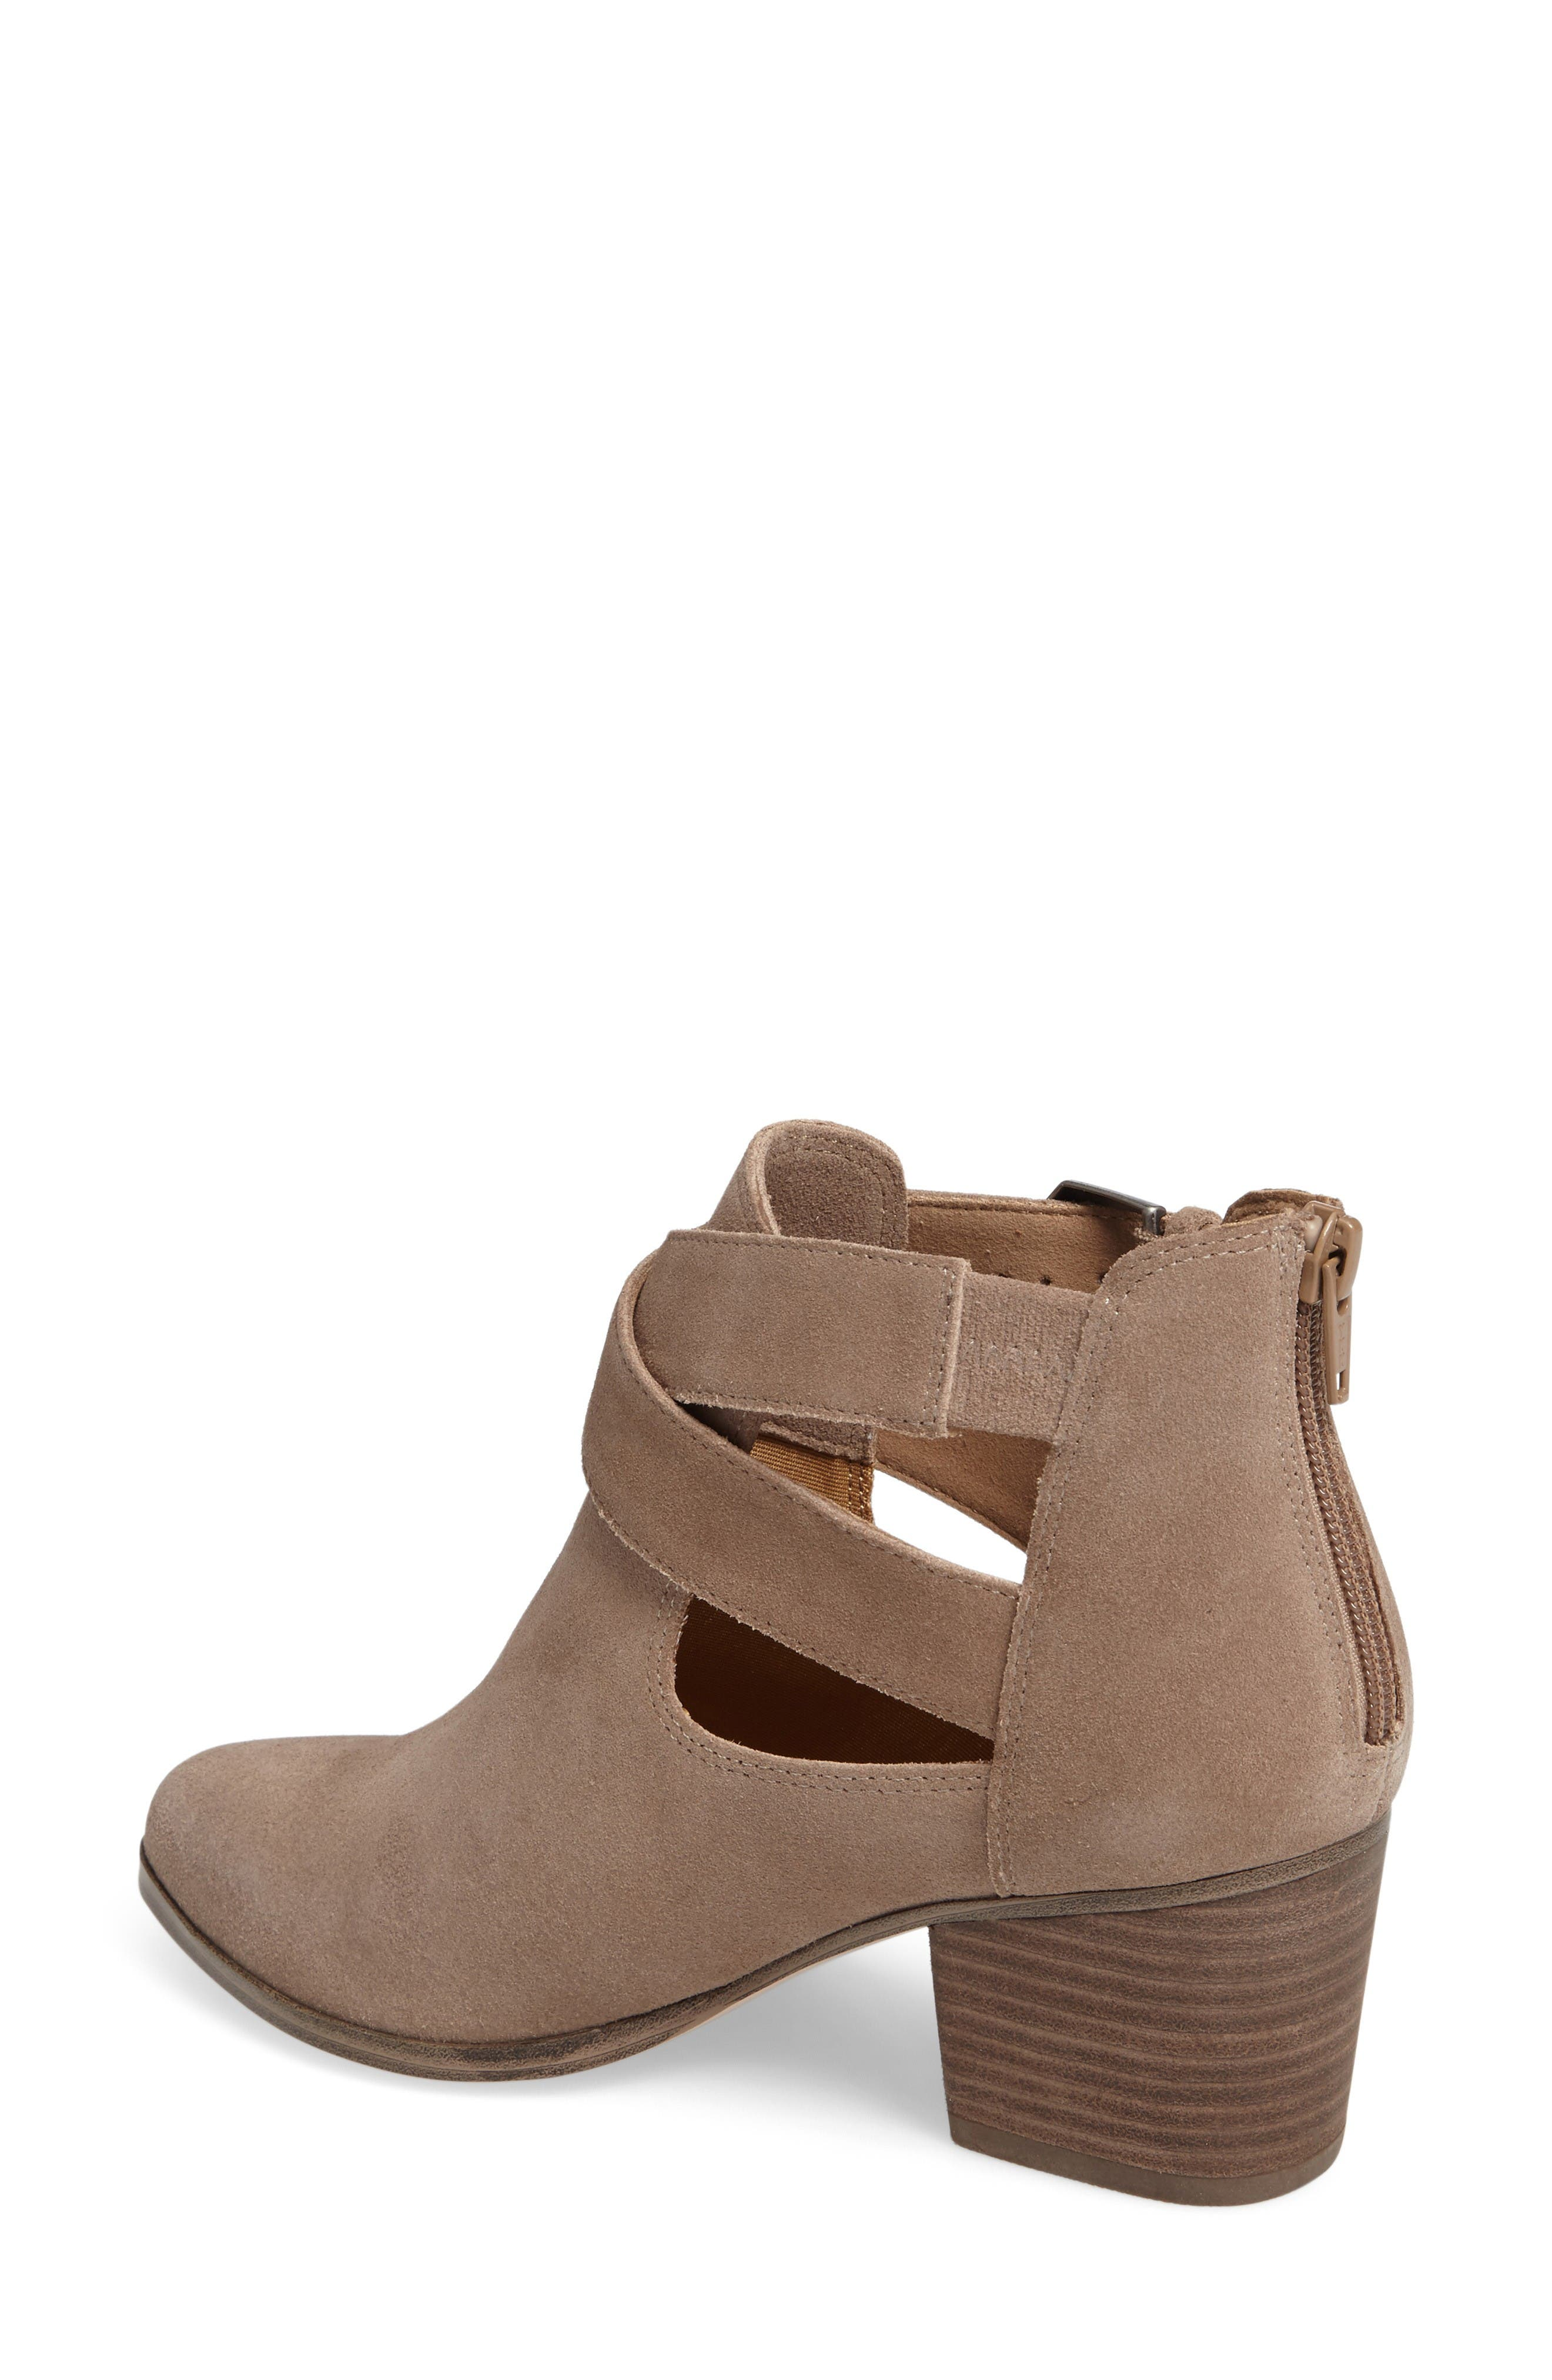 Azure Bootie,                             Alternate thumbnail 2, color,                             Taupe